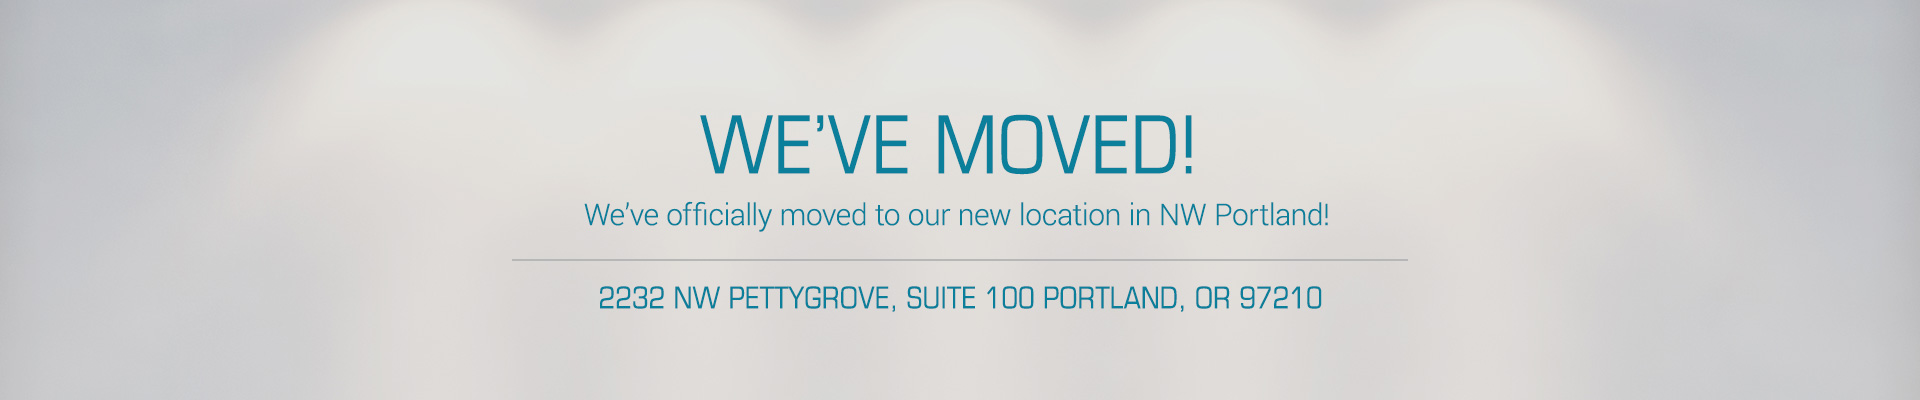 Studio Blue has moved to a new NW Location!